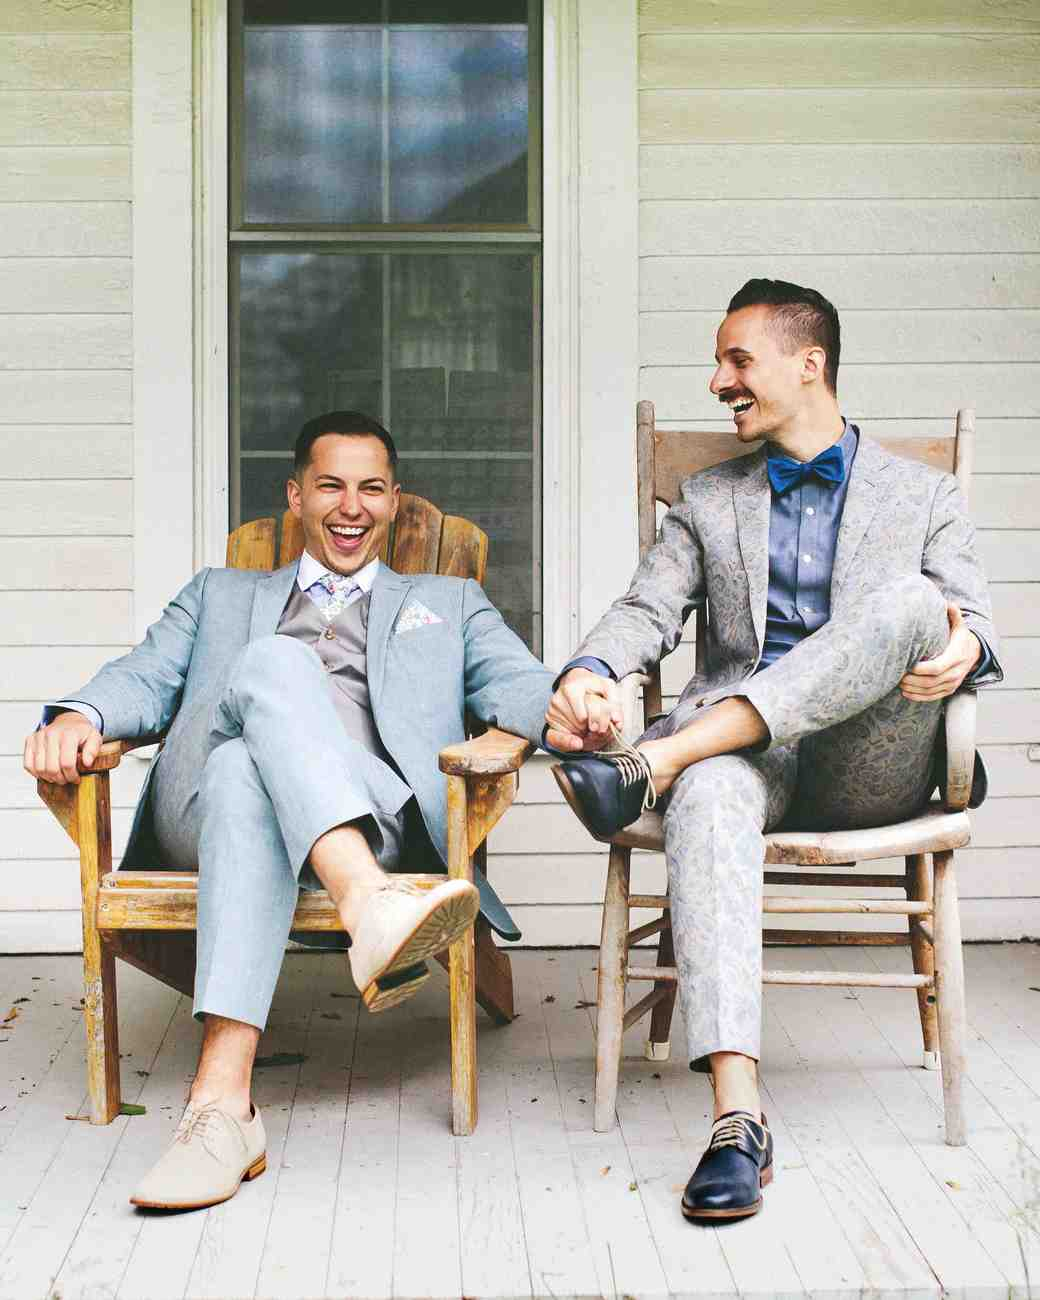 7 Tips for Hosting a Same-Sex Bachelor or Bachelorette Party